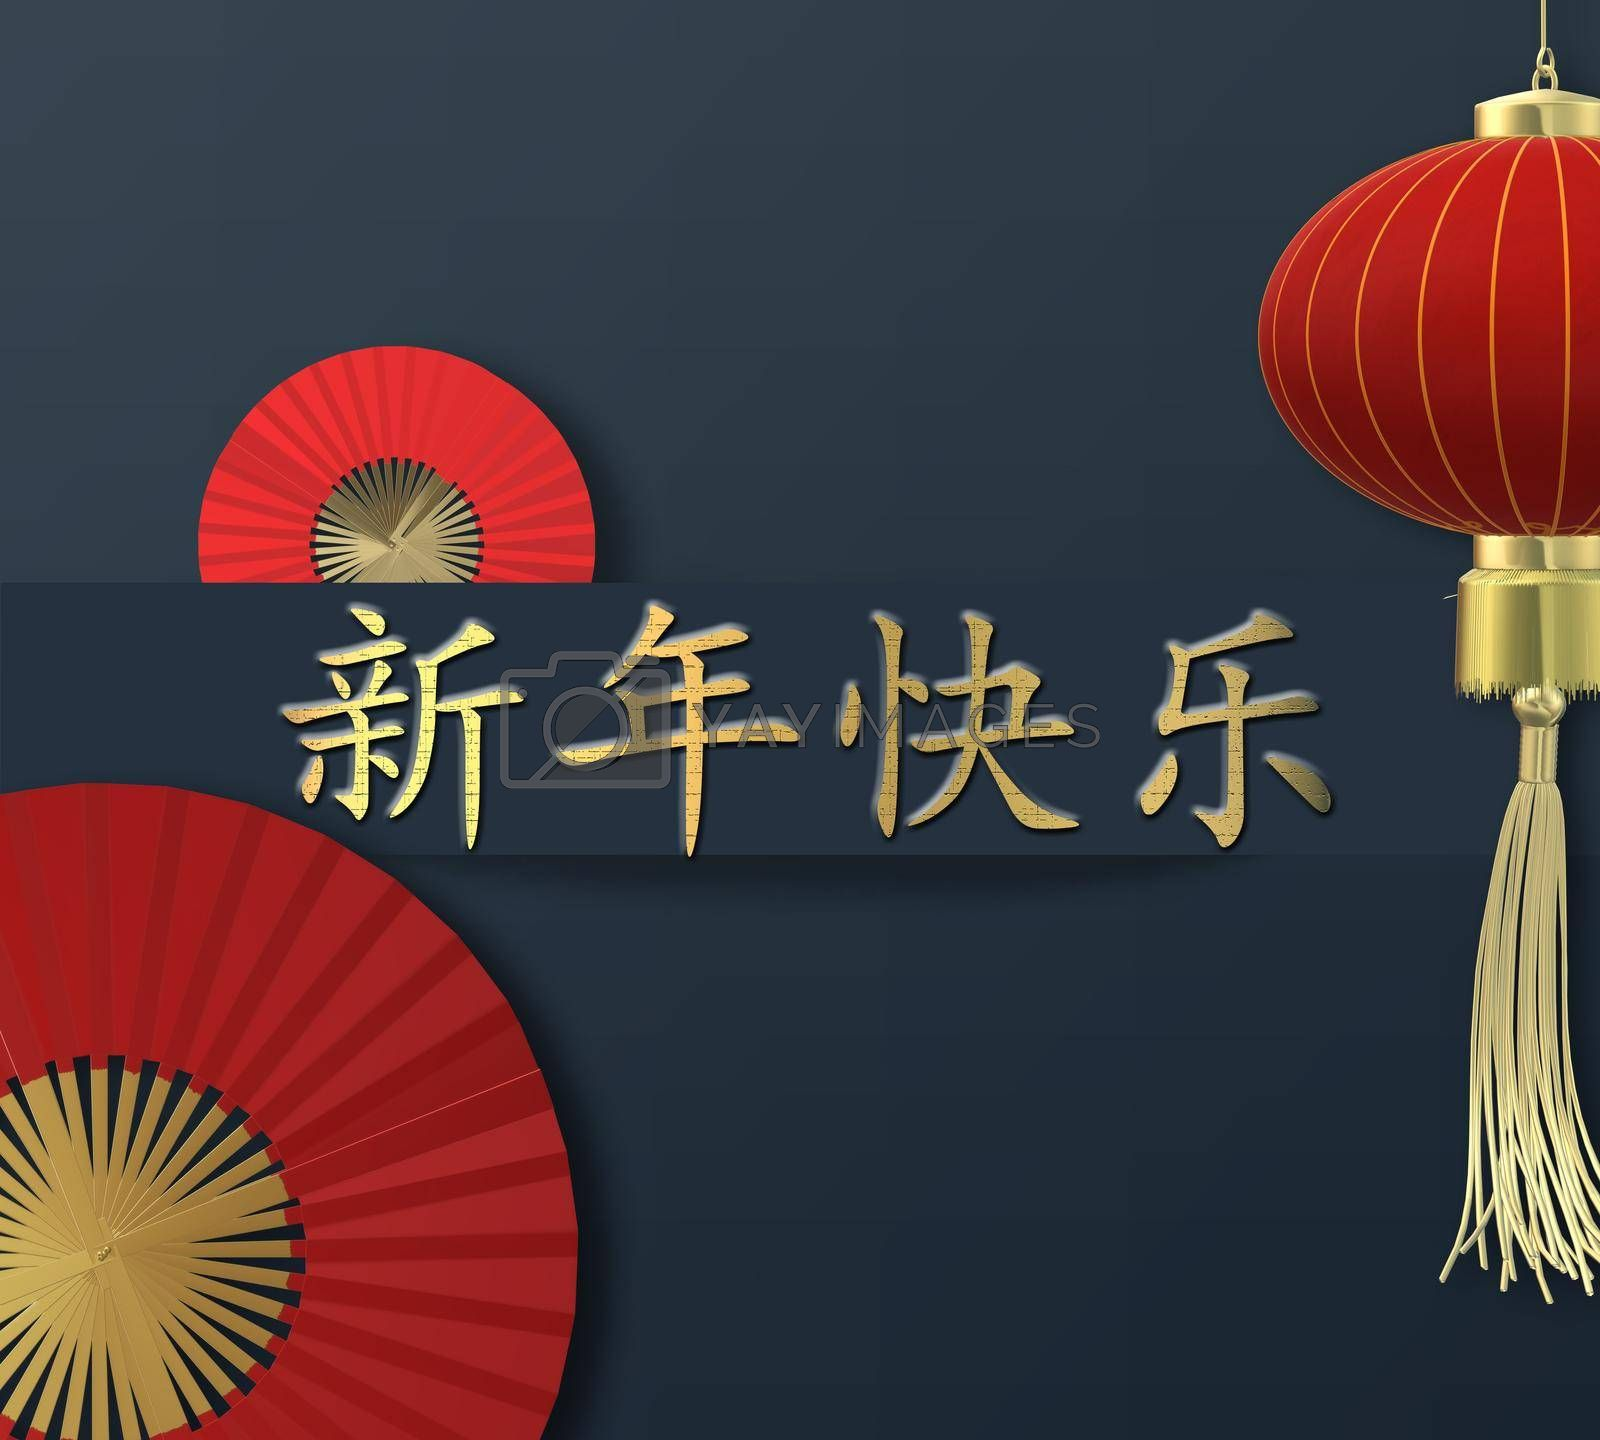 Happy New Year card. Happy Chinese new year golden text in Chinese, red fans, lantrn. Design for greetings card, invitation, posters, brochure, calendar, flyers, banners. 3D illustration